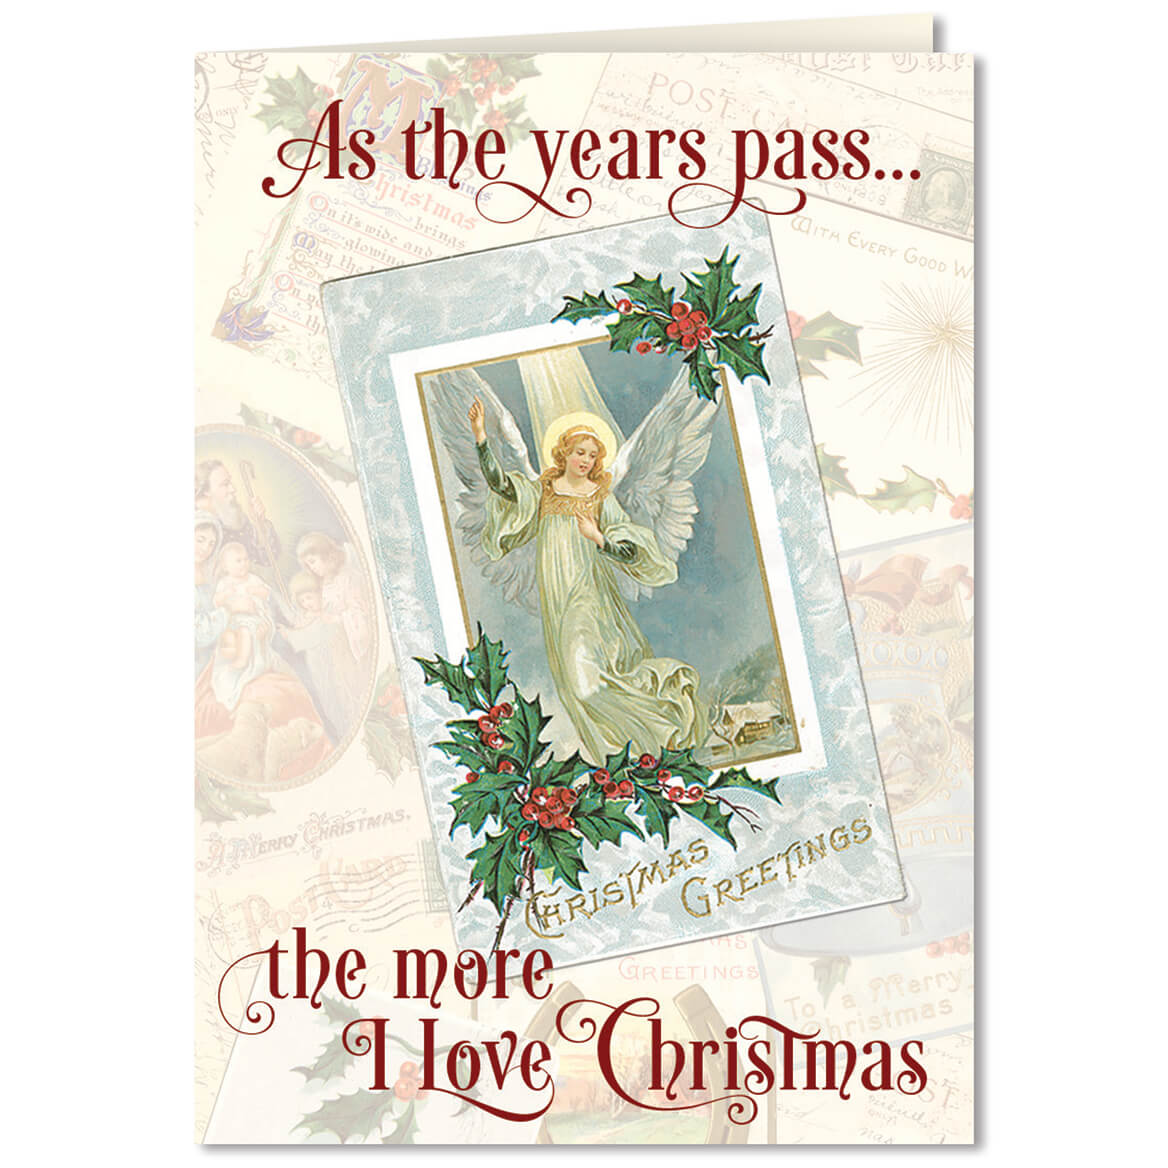 Personalized The More I Love Christmas Card Set of 20 - Miles Kimball